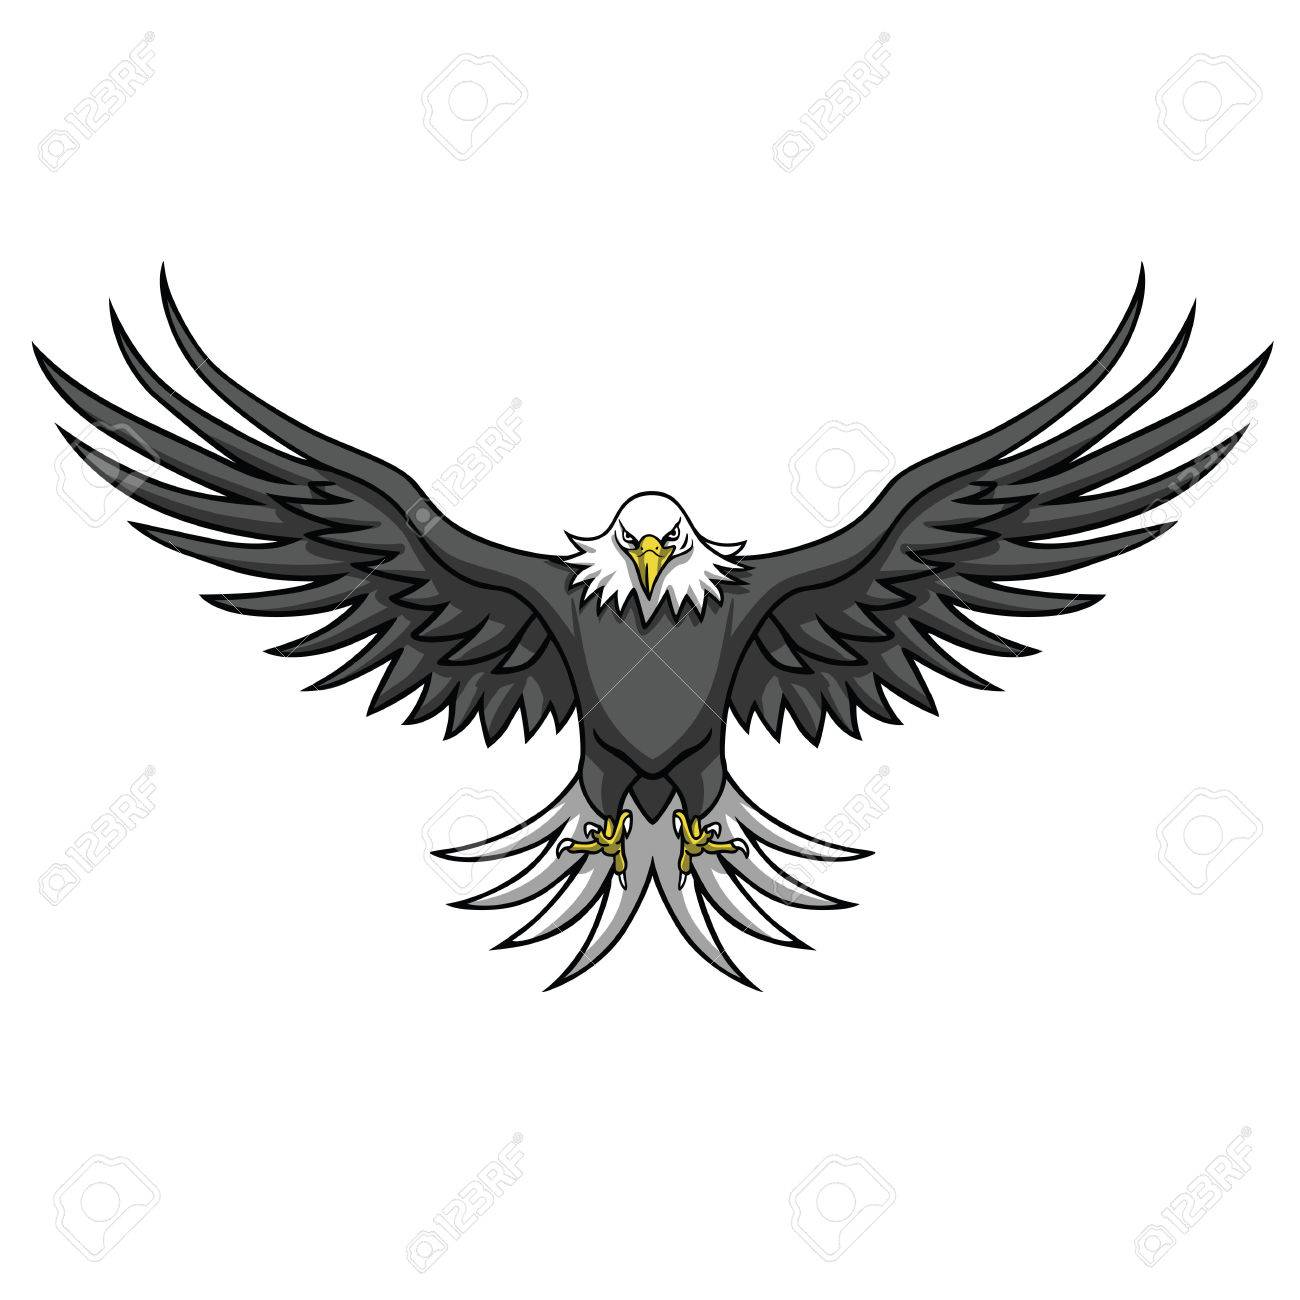 eagle mascot spread the wings vector illustration royalty free rh 123rf com vector eagle free vector eagle tree